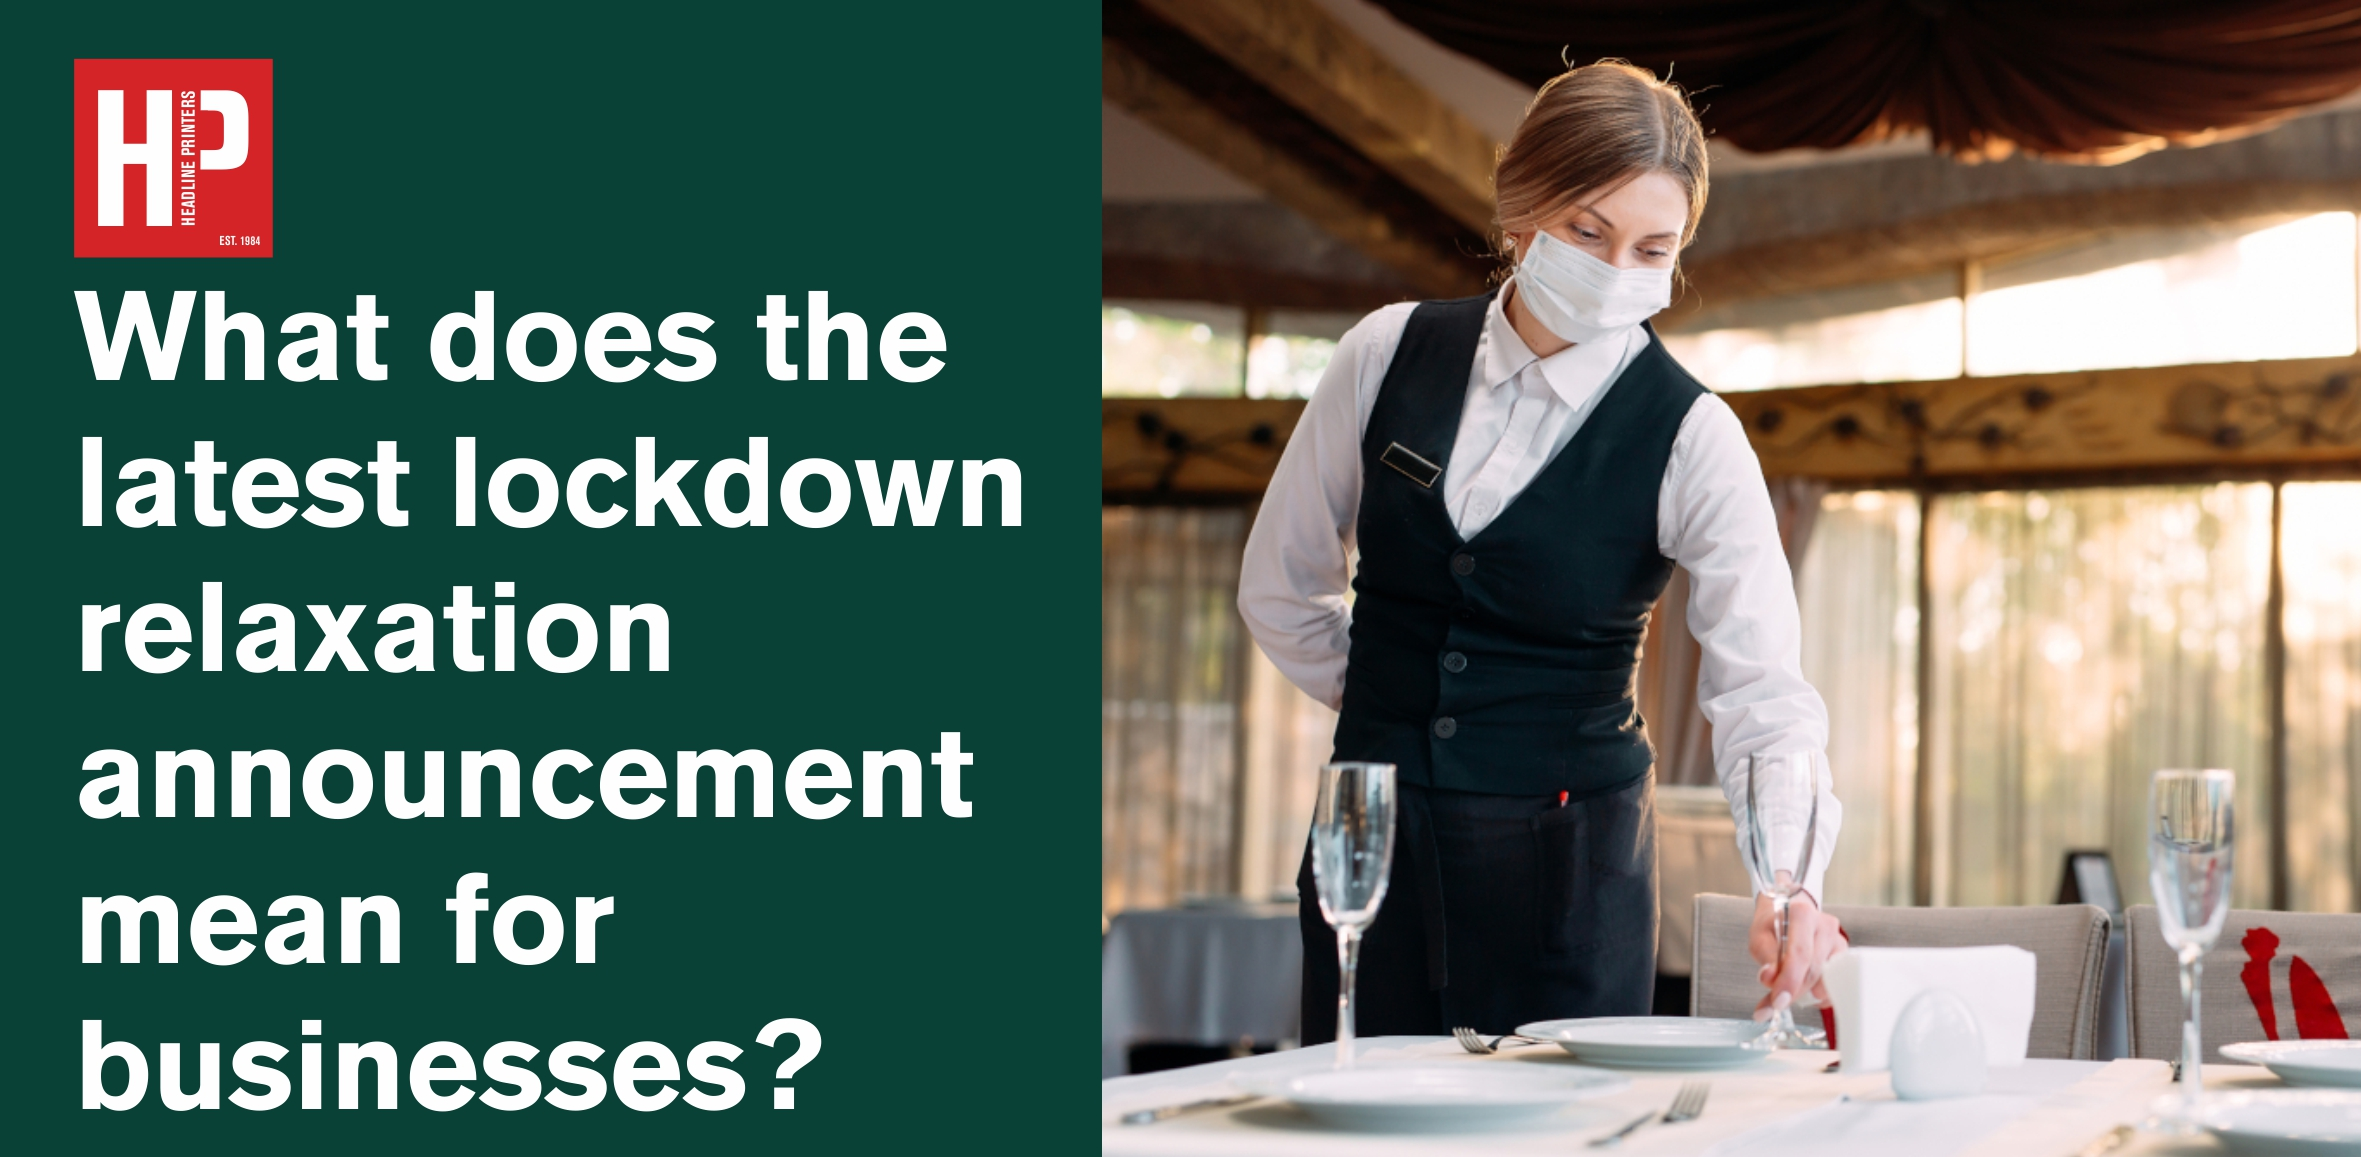 What does the latest lockdown relaxation announcement mean for businesses?